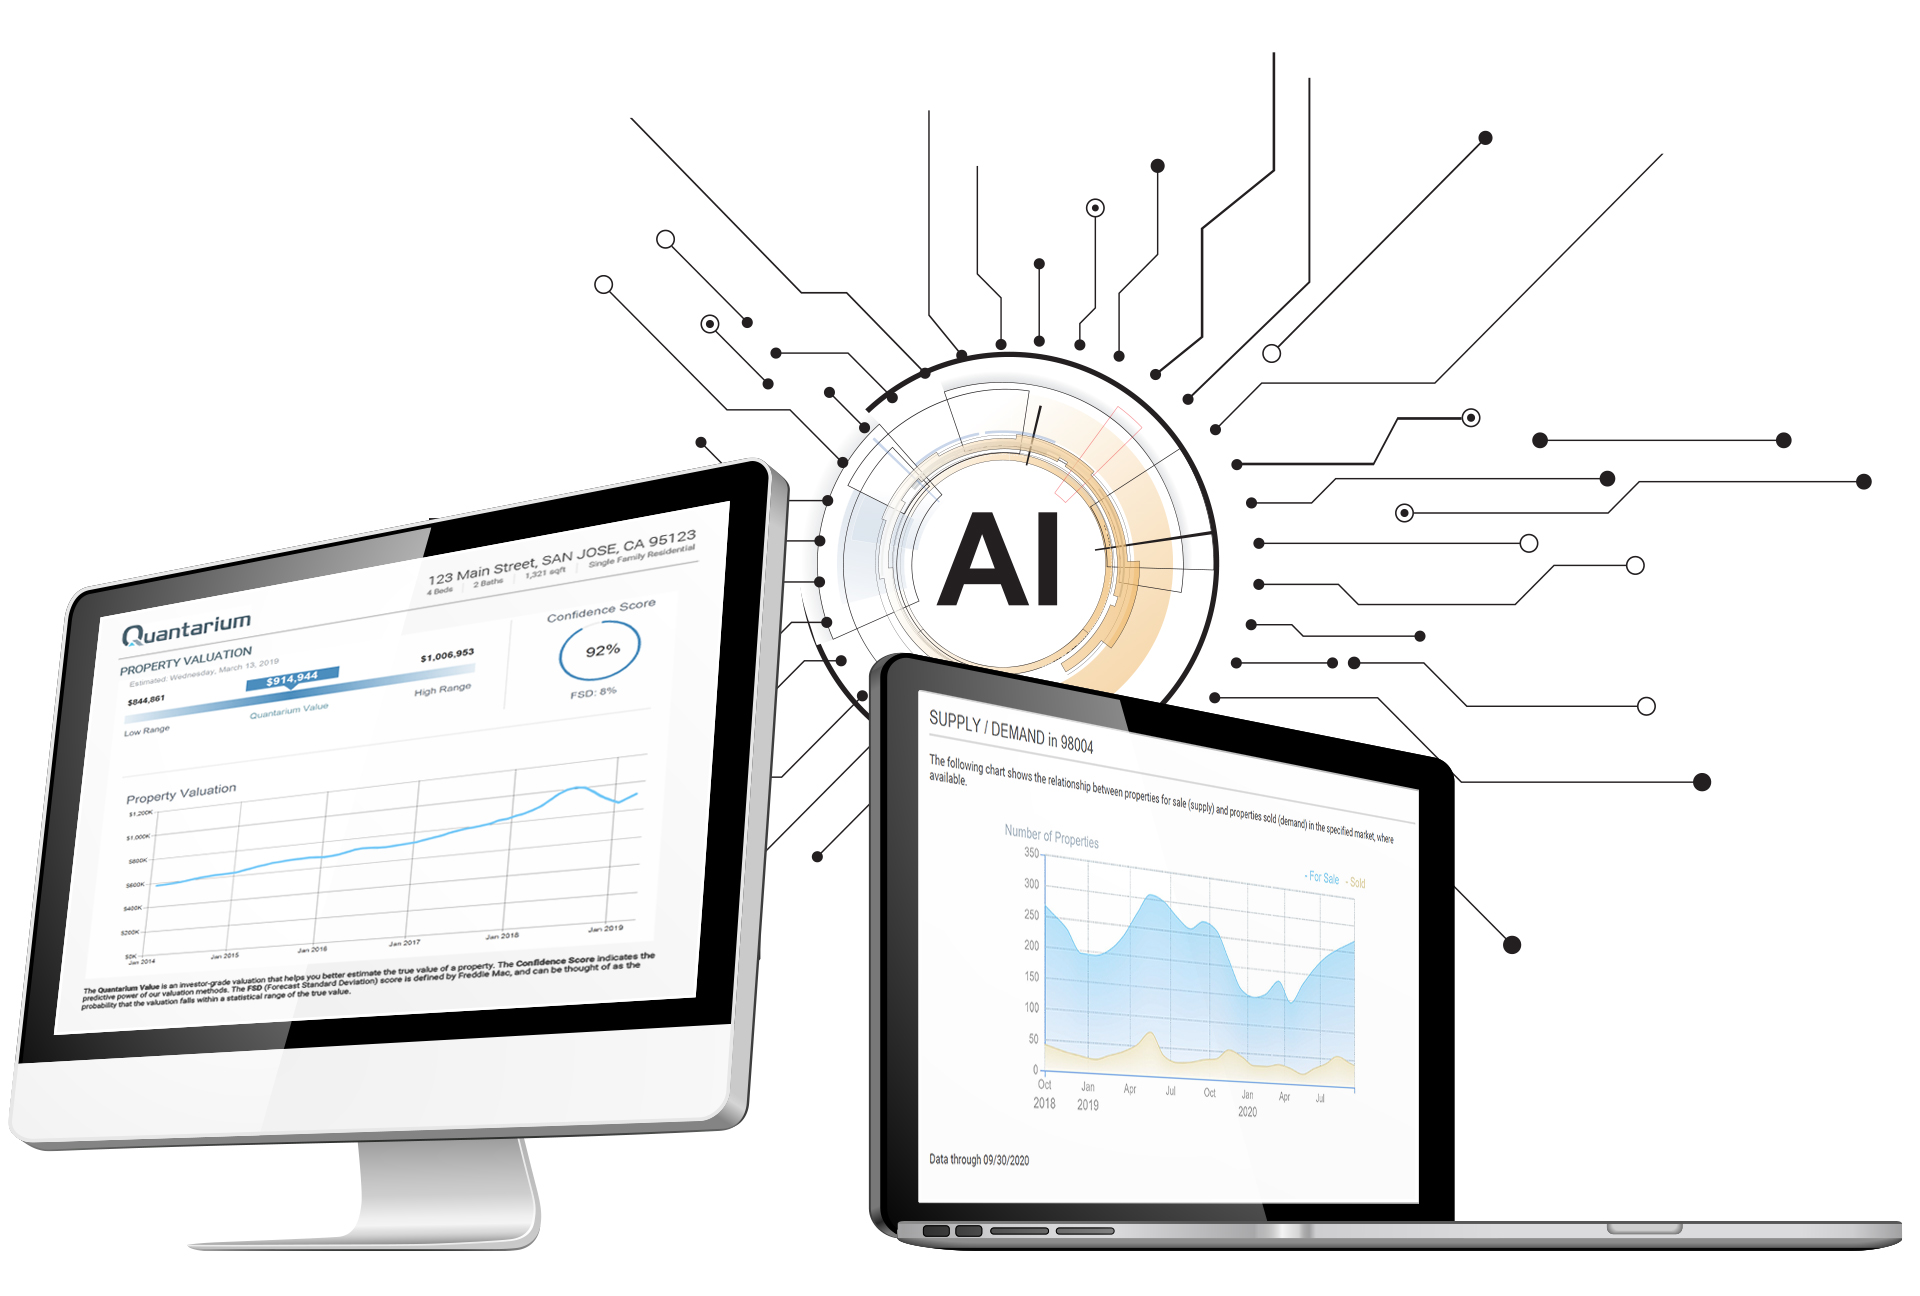 Quantarium Valuation Models Product and Artificial Intelligence